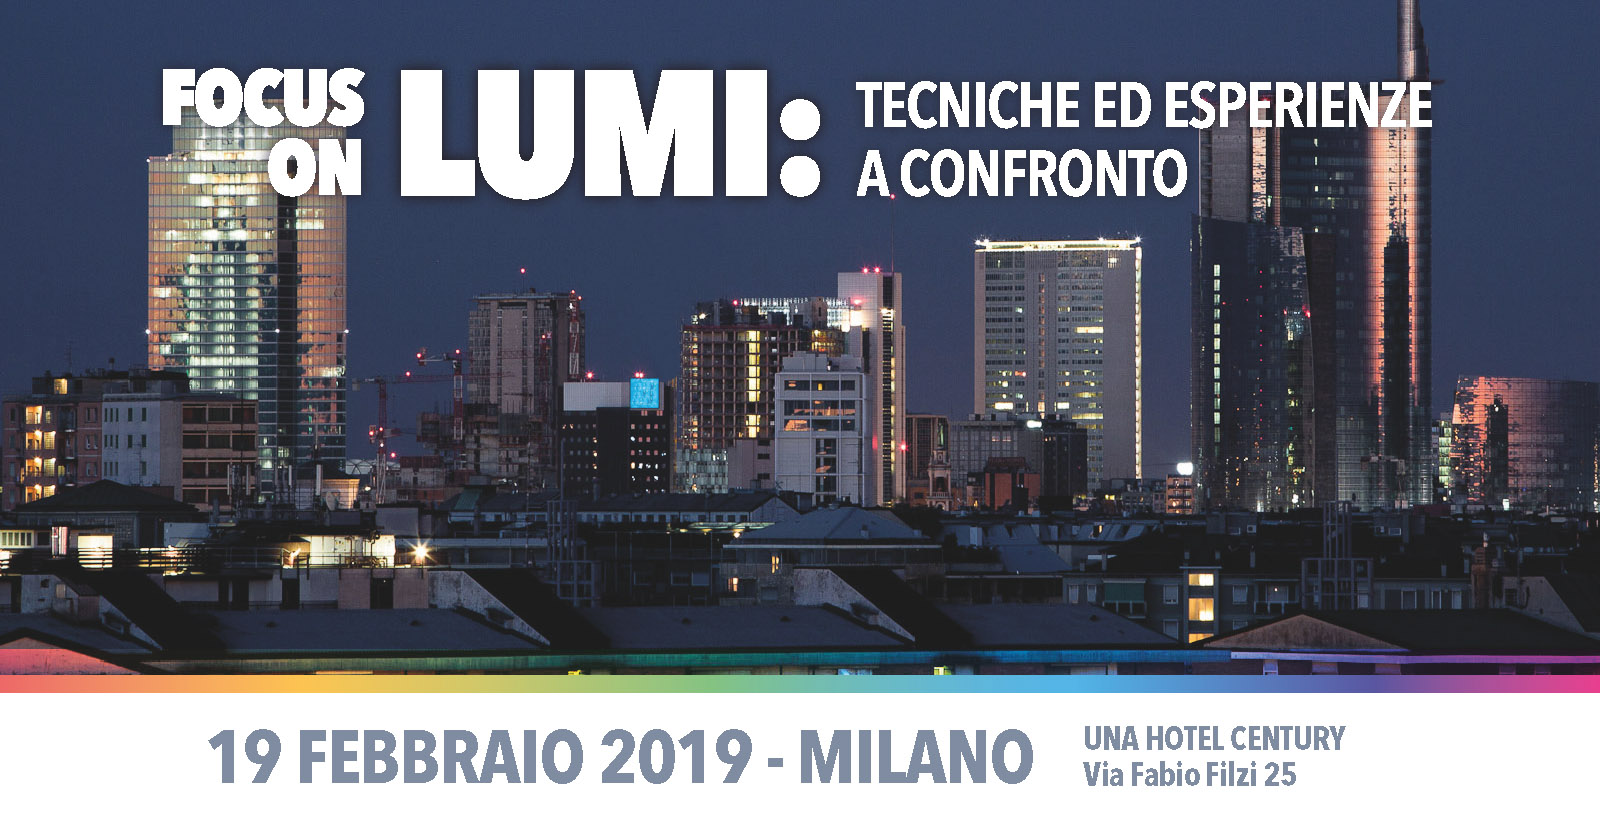 FOCUS ON LUMI: TECNICHE ED ESPERIENZE A CONFRONTO